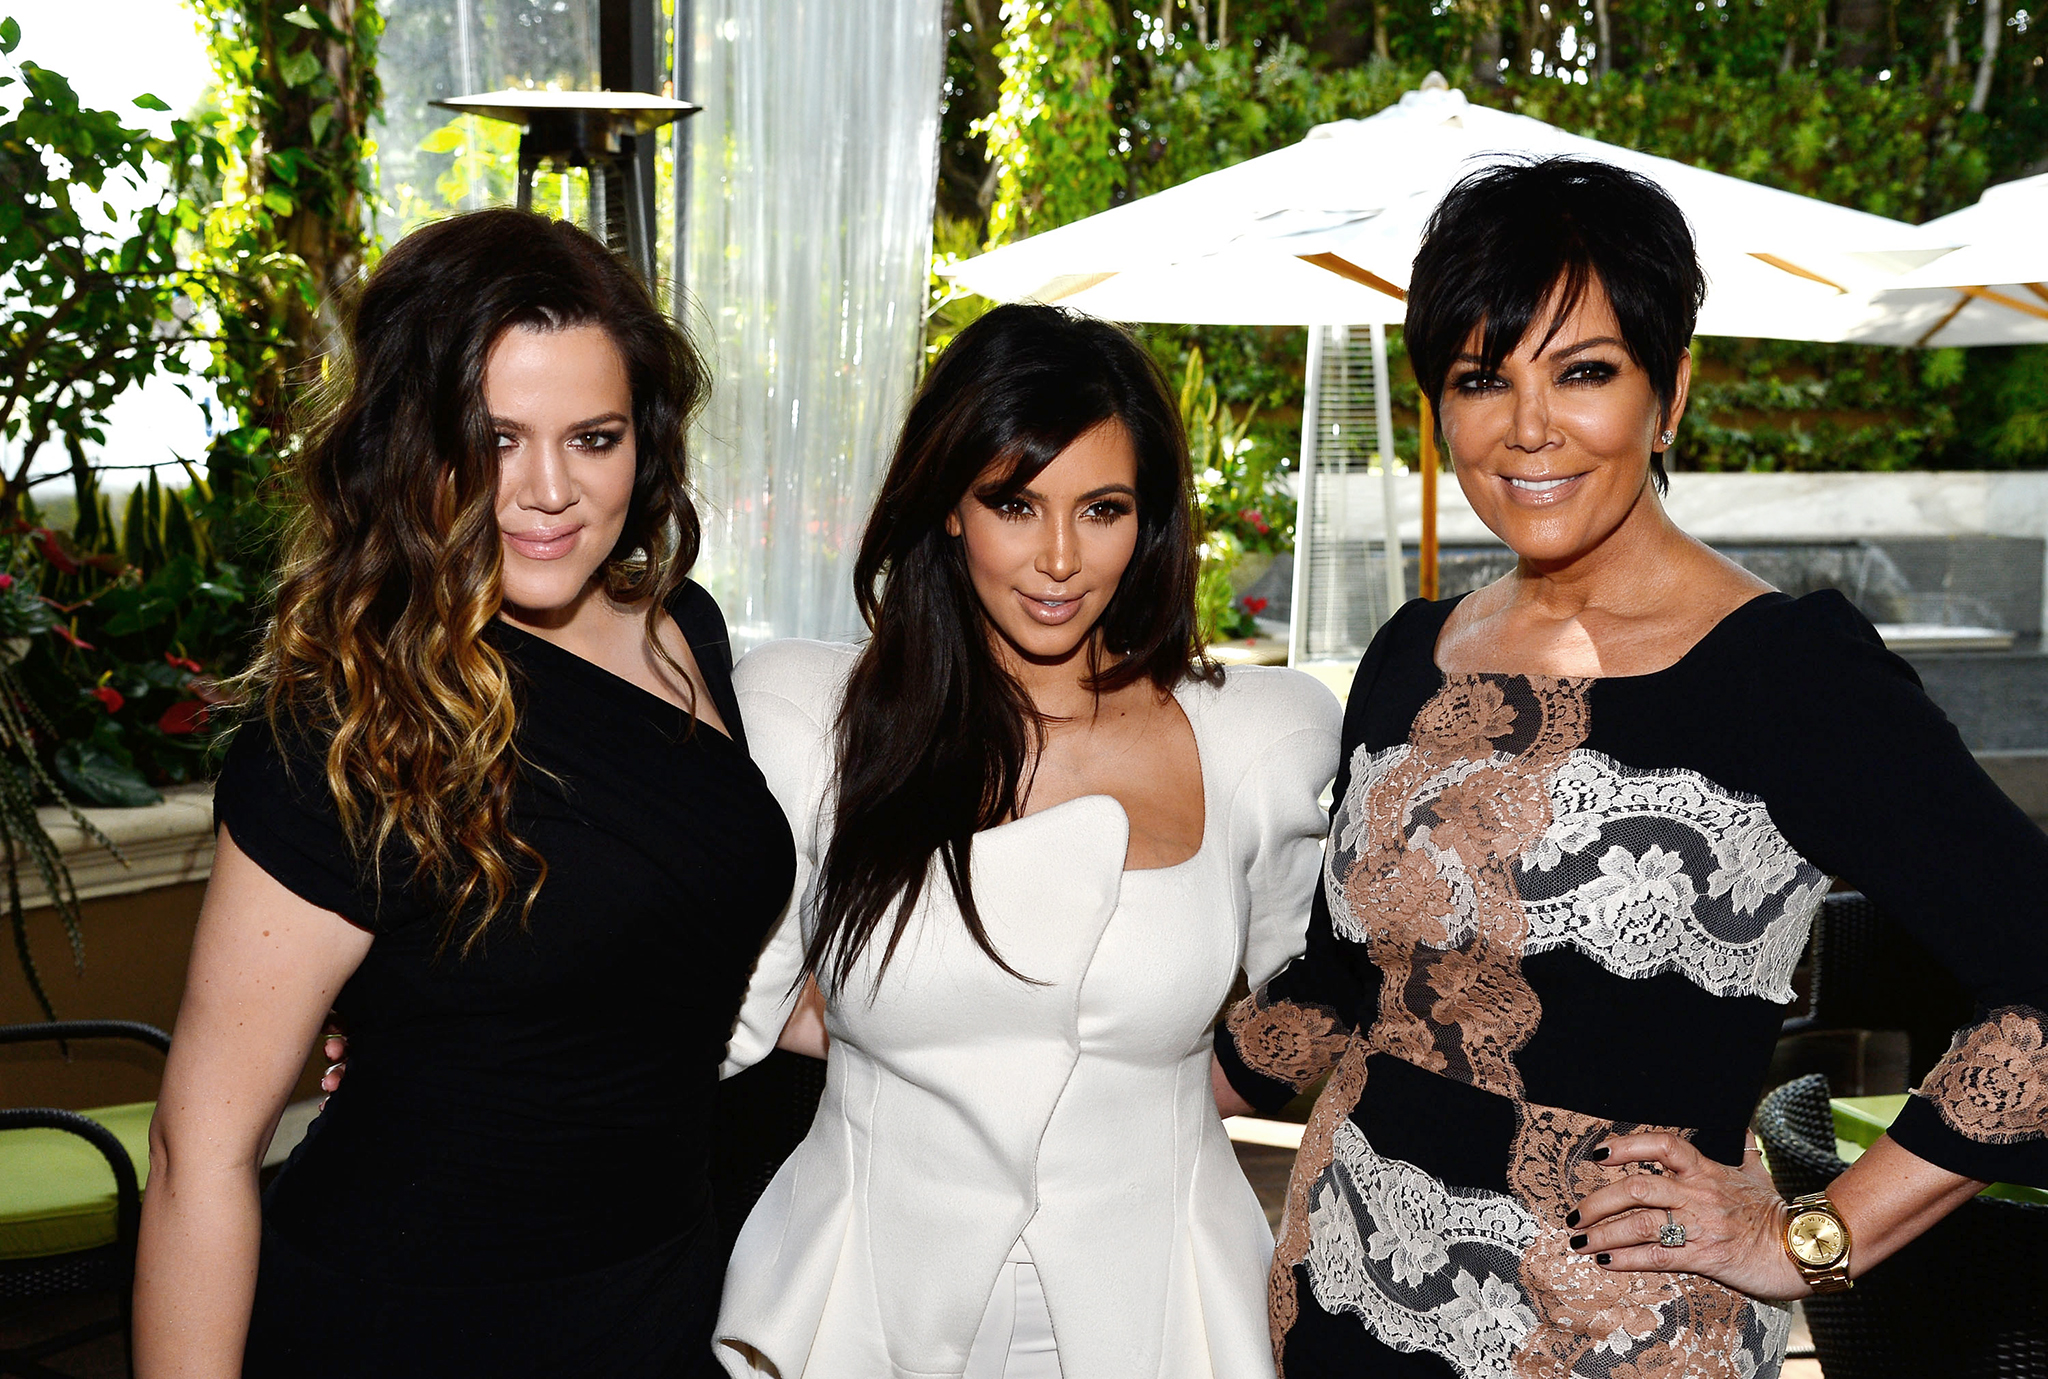 Khloé and Kim Kardashian pose with momager Kris Jenner. (Getty Images)